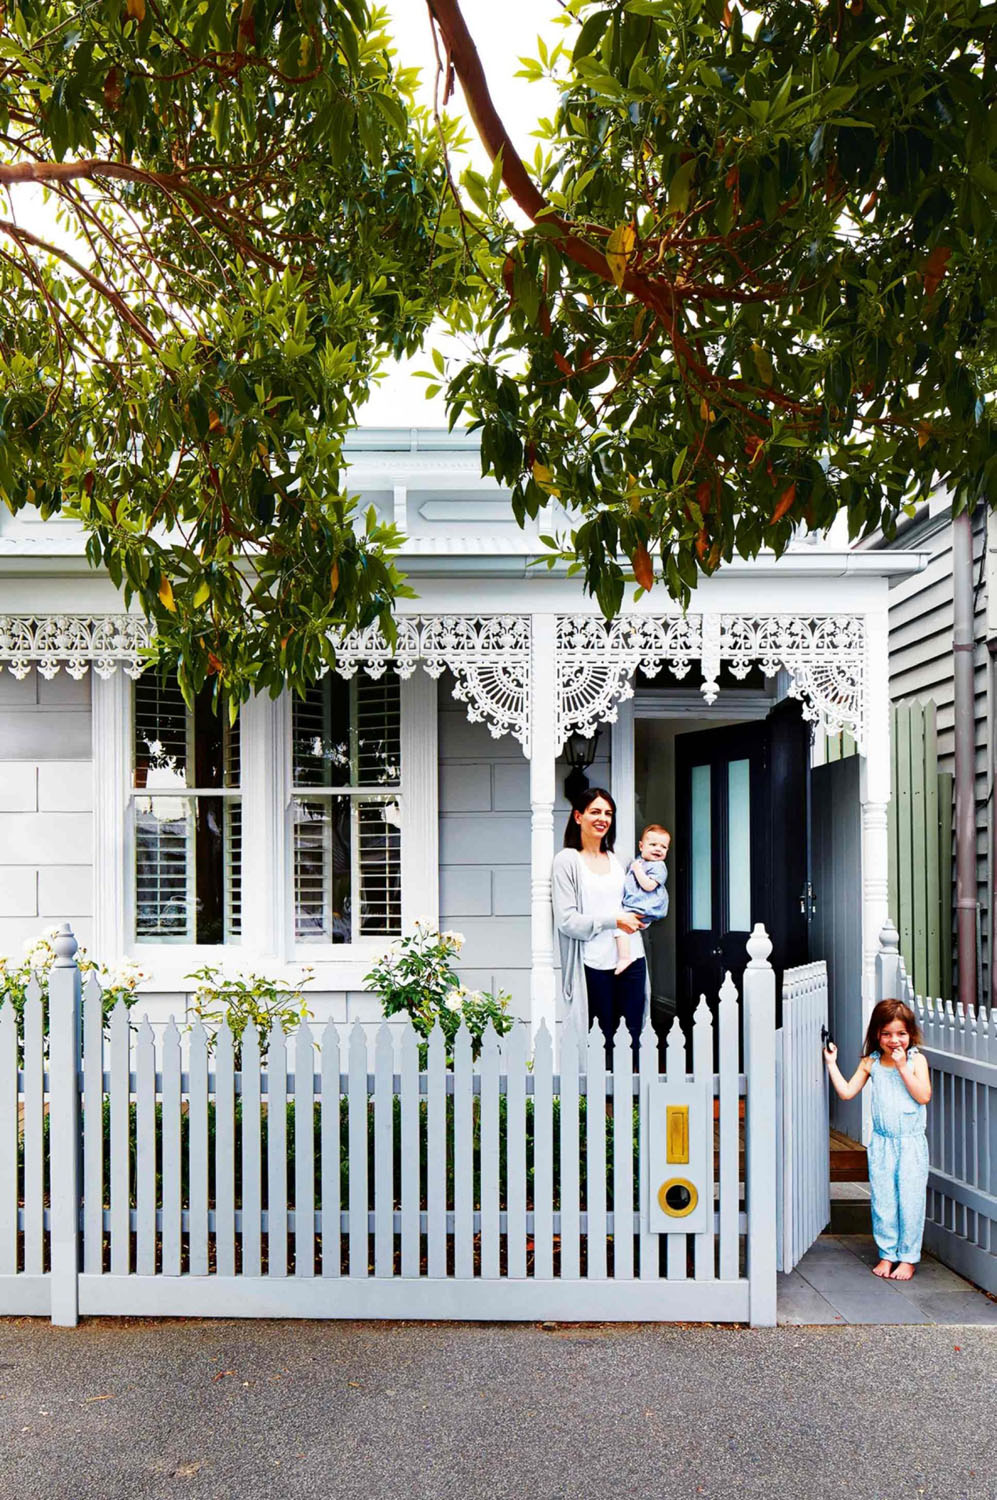 Modern Makeover Of A Victorian-Era Terrace House In